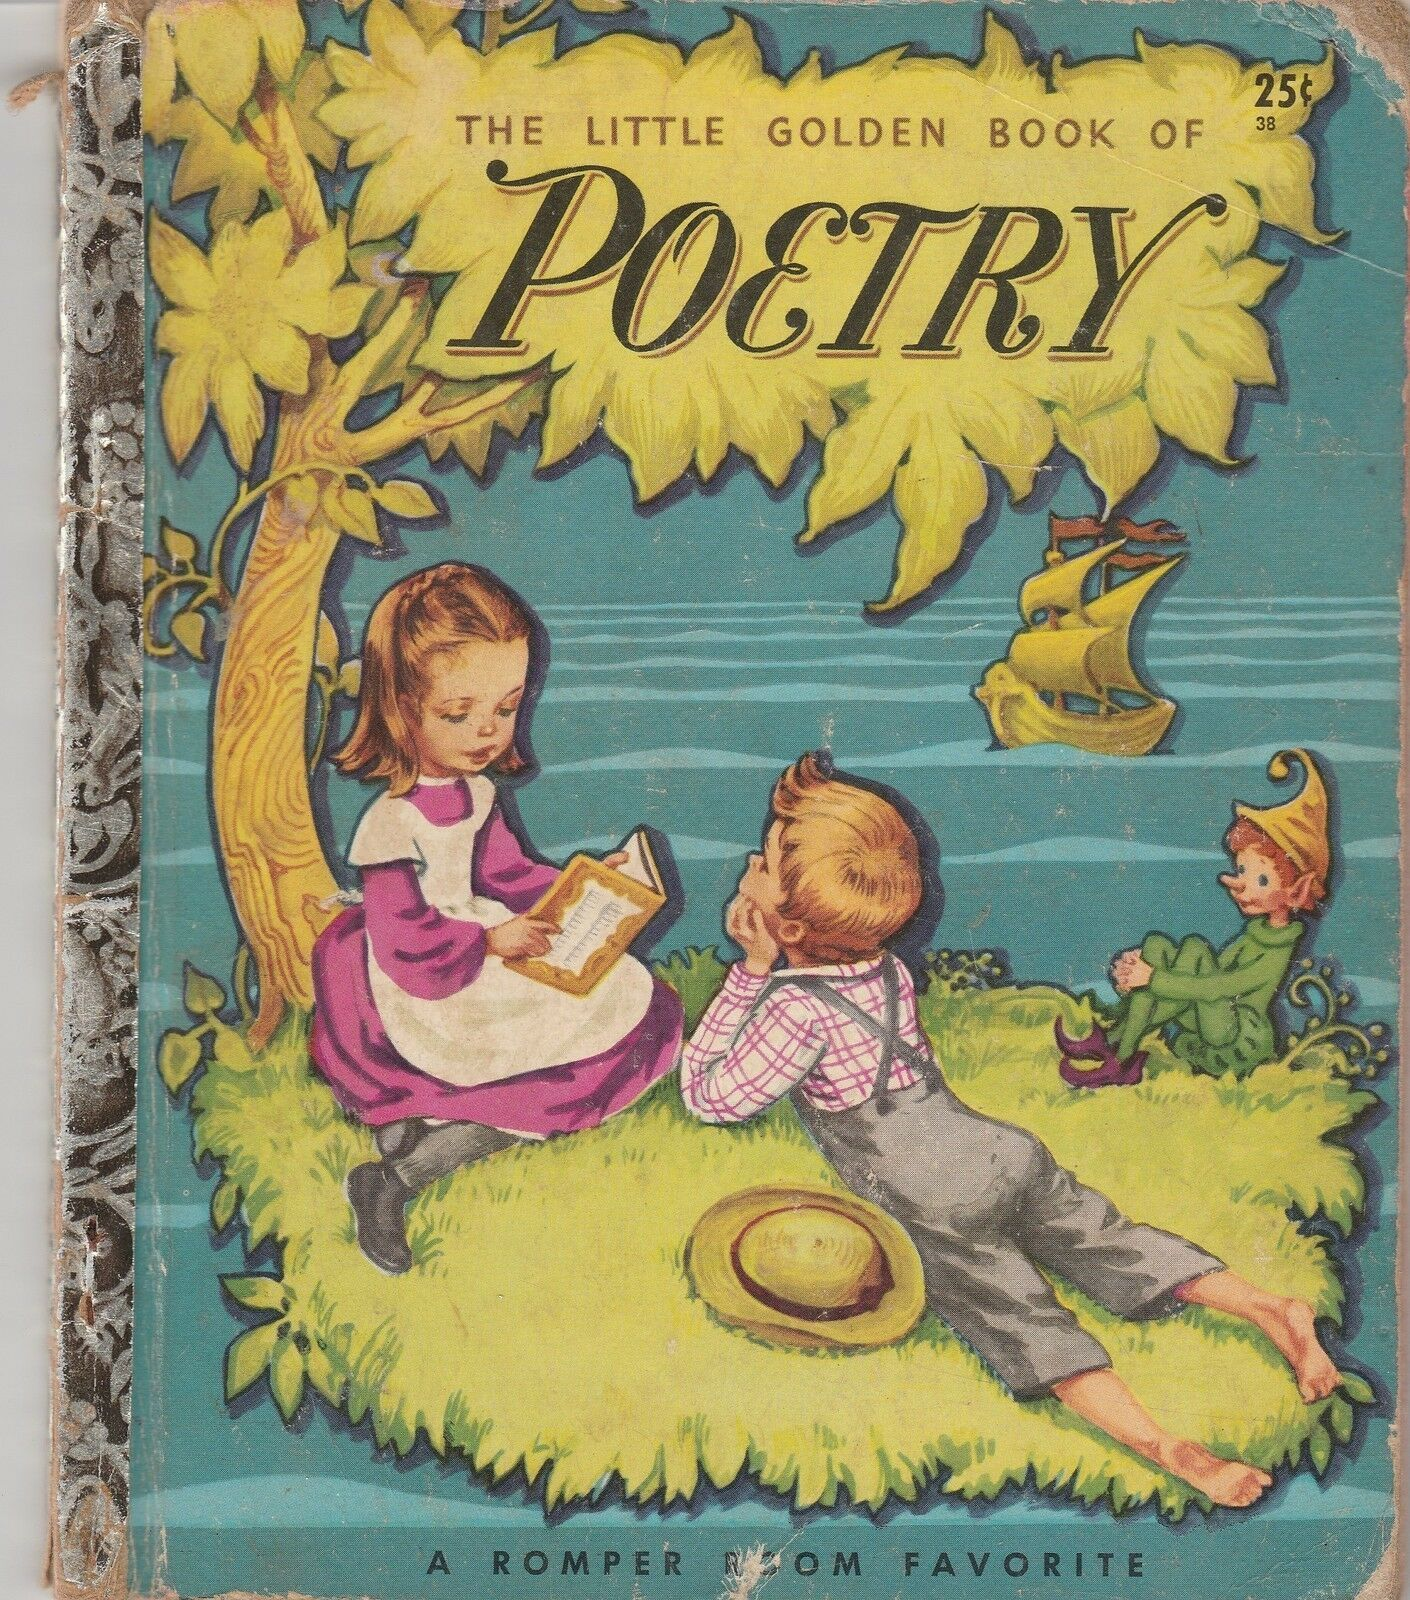 The Little Golden Book of Poetry by Corinne Malvern 1947 F Edition Book 38